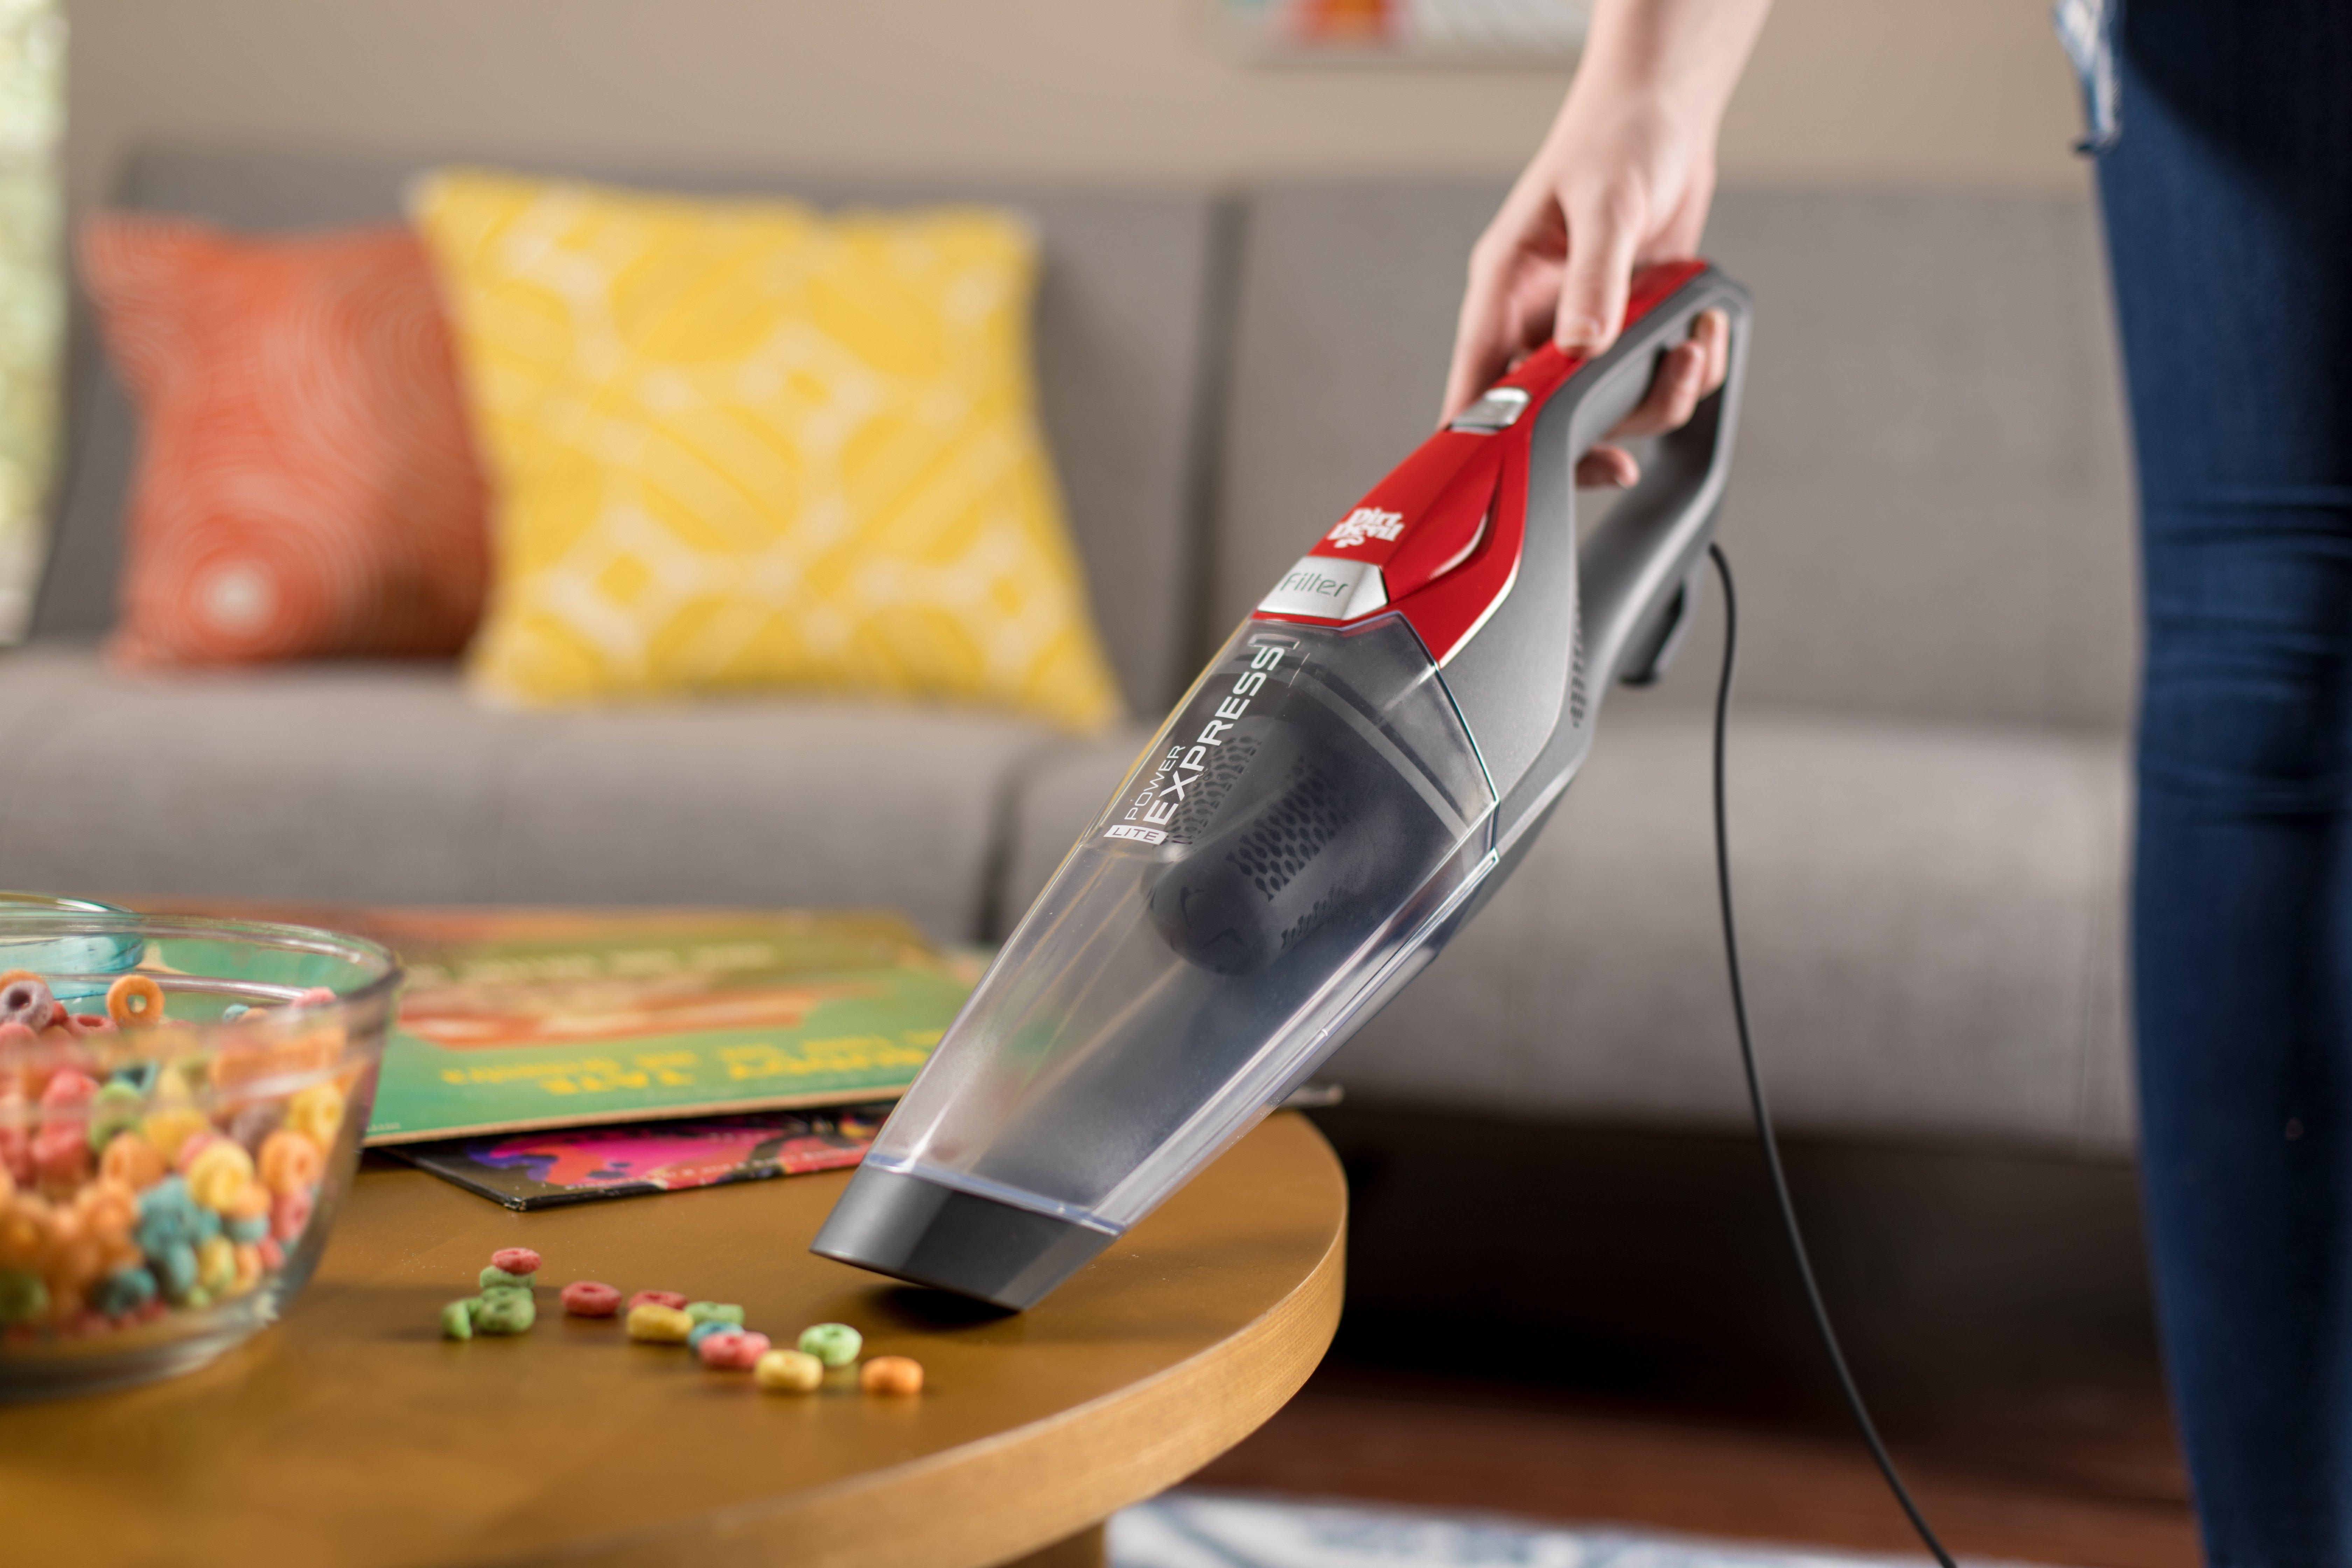 Power Express Lite 3-in-1 Corded Stick Vacuum6